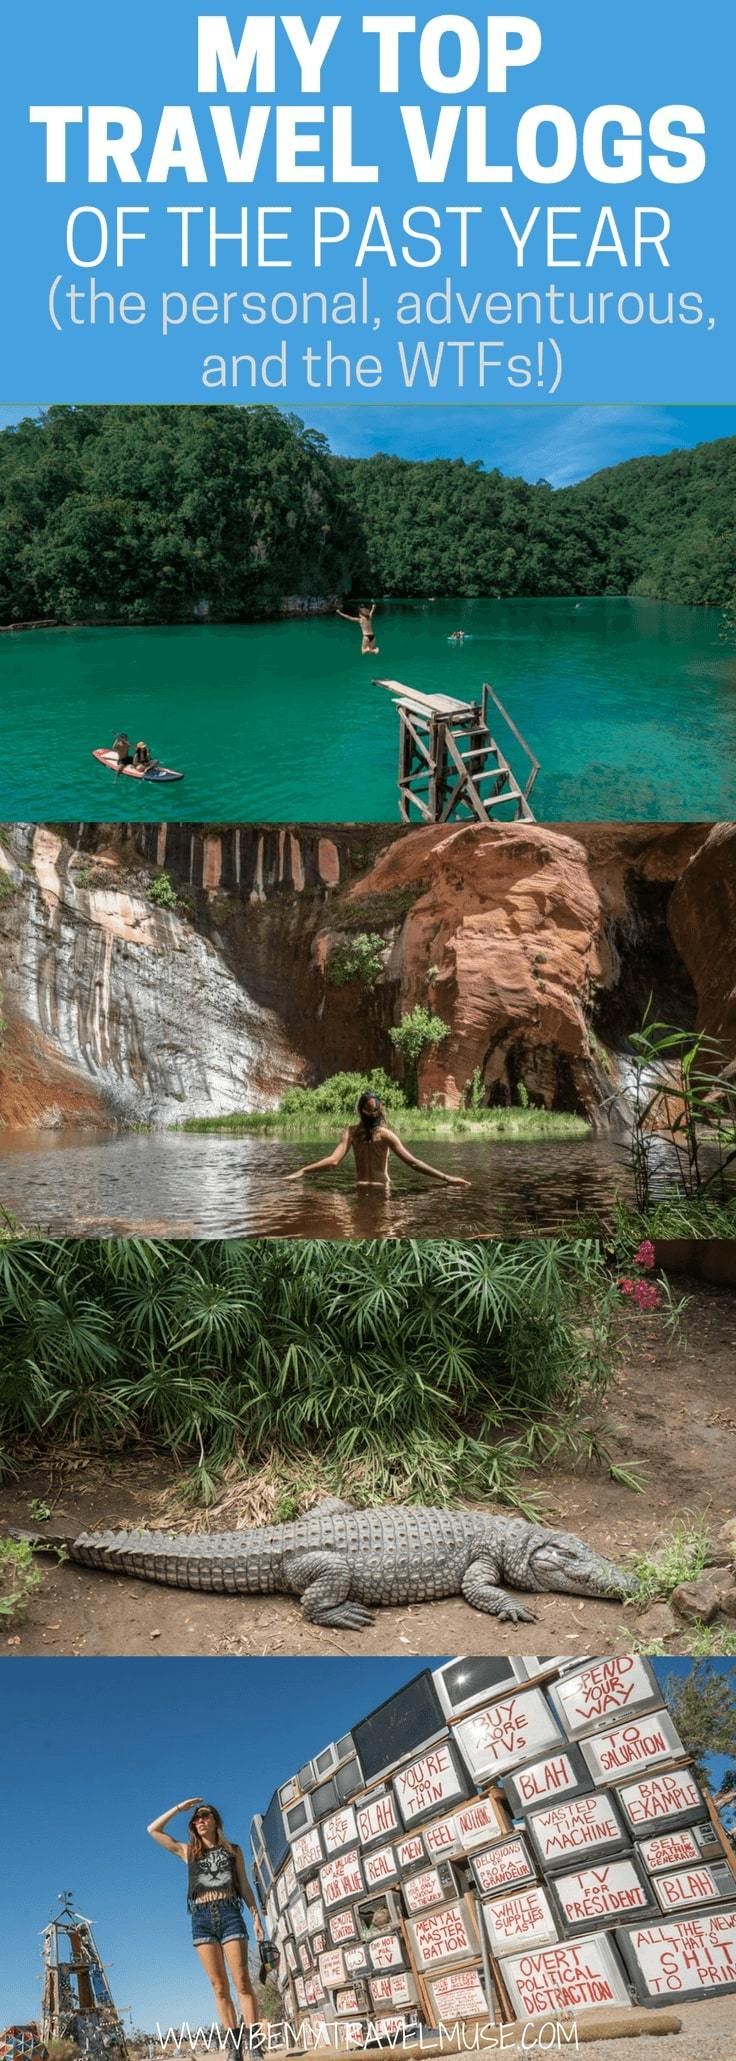 All of my best adventures captured on video of the past year in this article! I visited the Slab City, the last free place in America; almost got carried away by a flash flood in Africa, skinny-dipped in Coyote Gulch, and watched everything goes wrong in the Philippines! Be My Travel Muse | Solo Female Travel | Solo travel vloggers